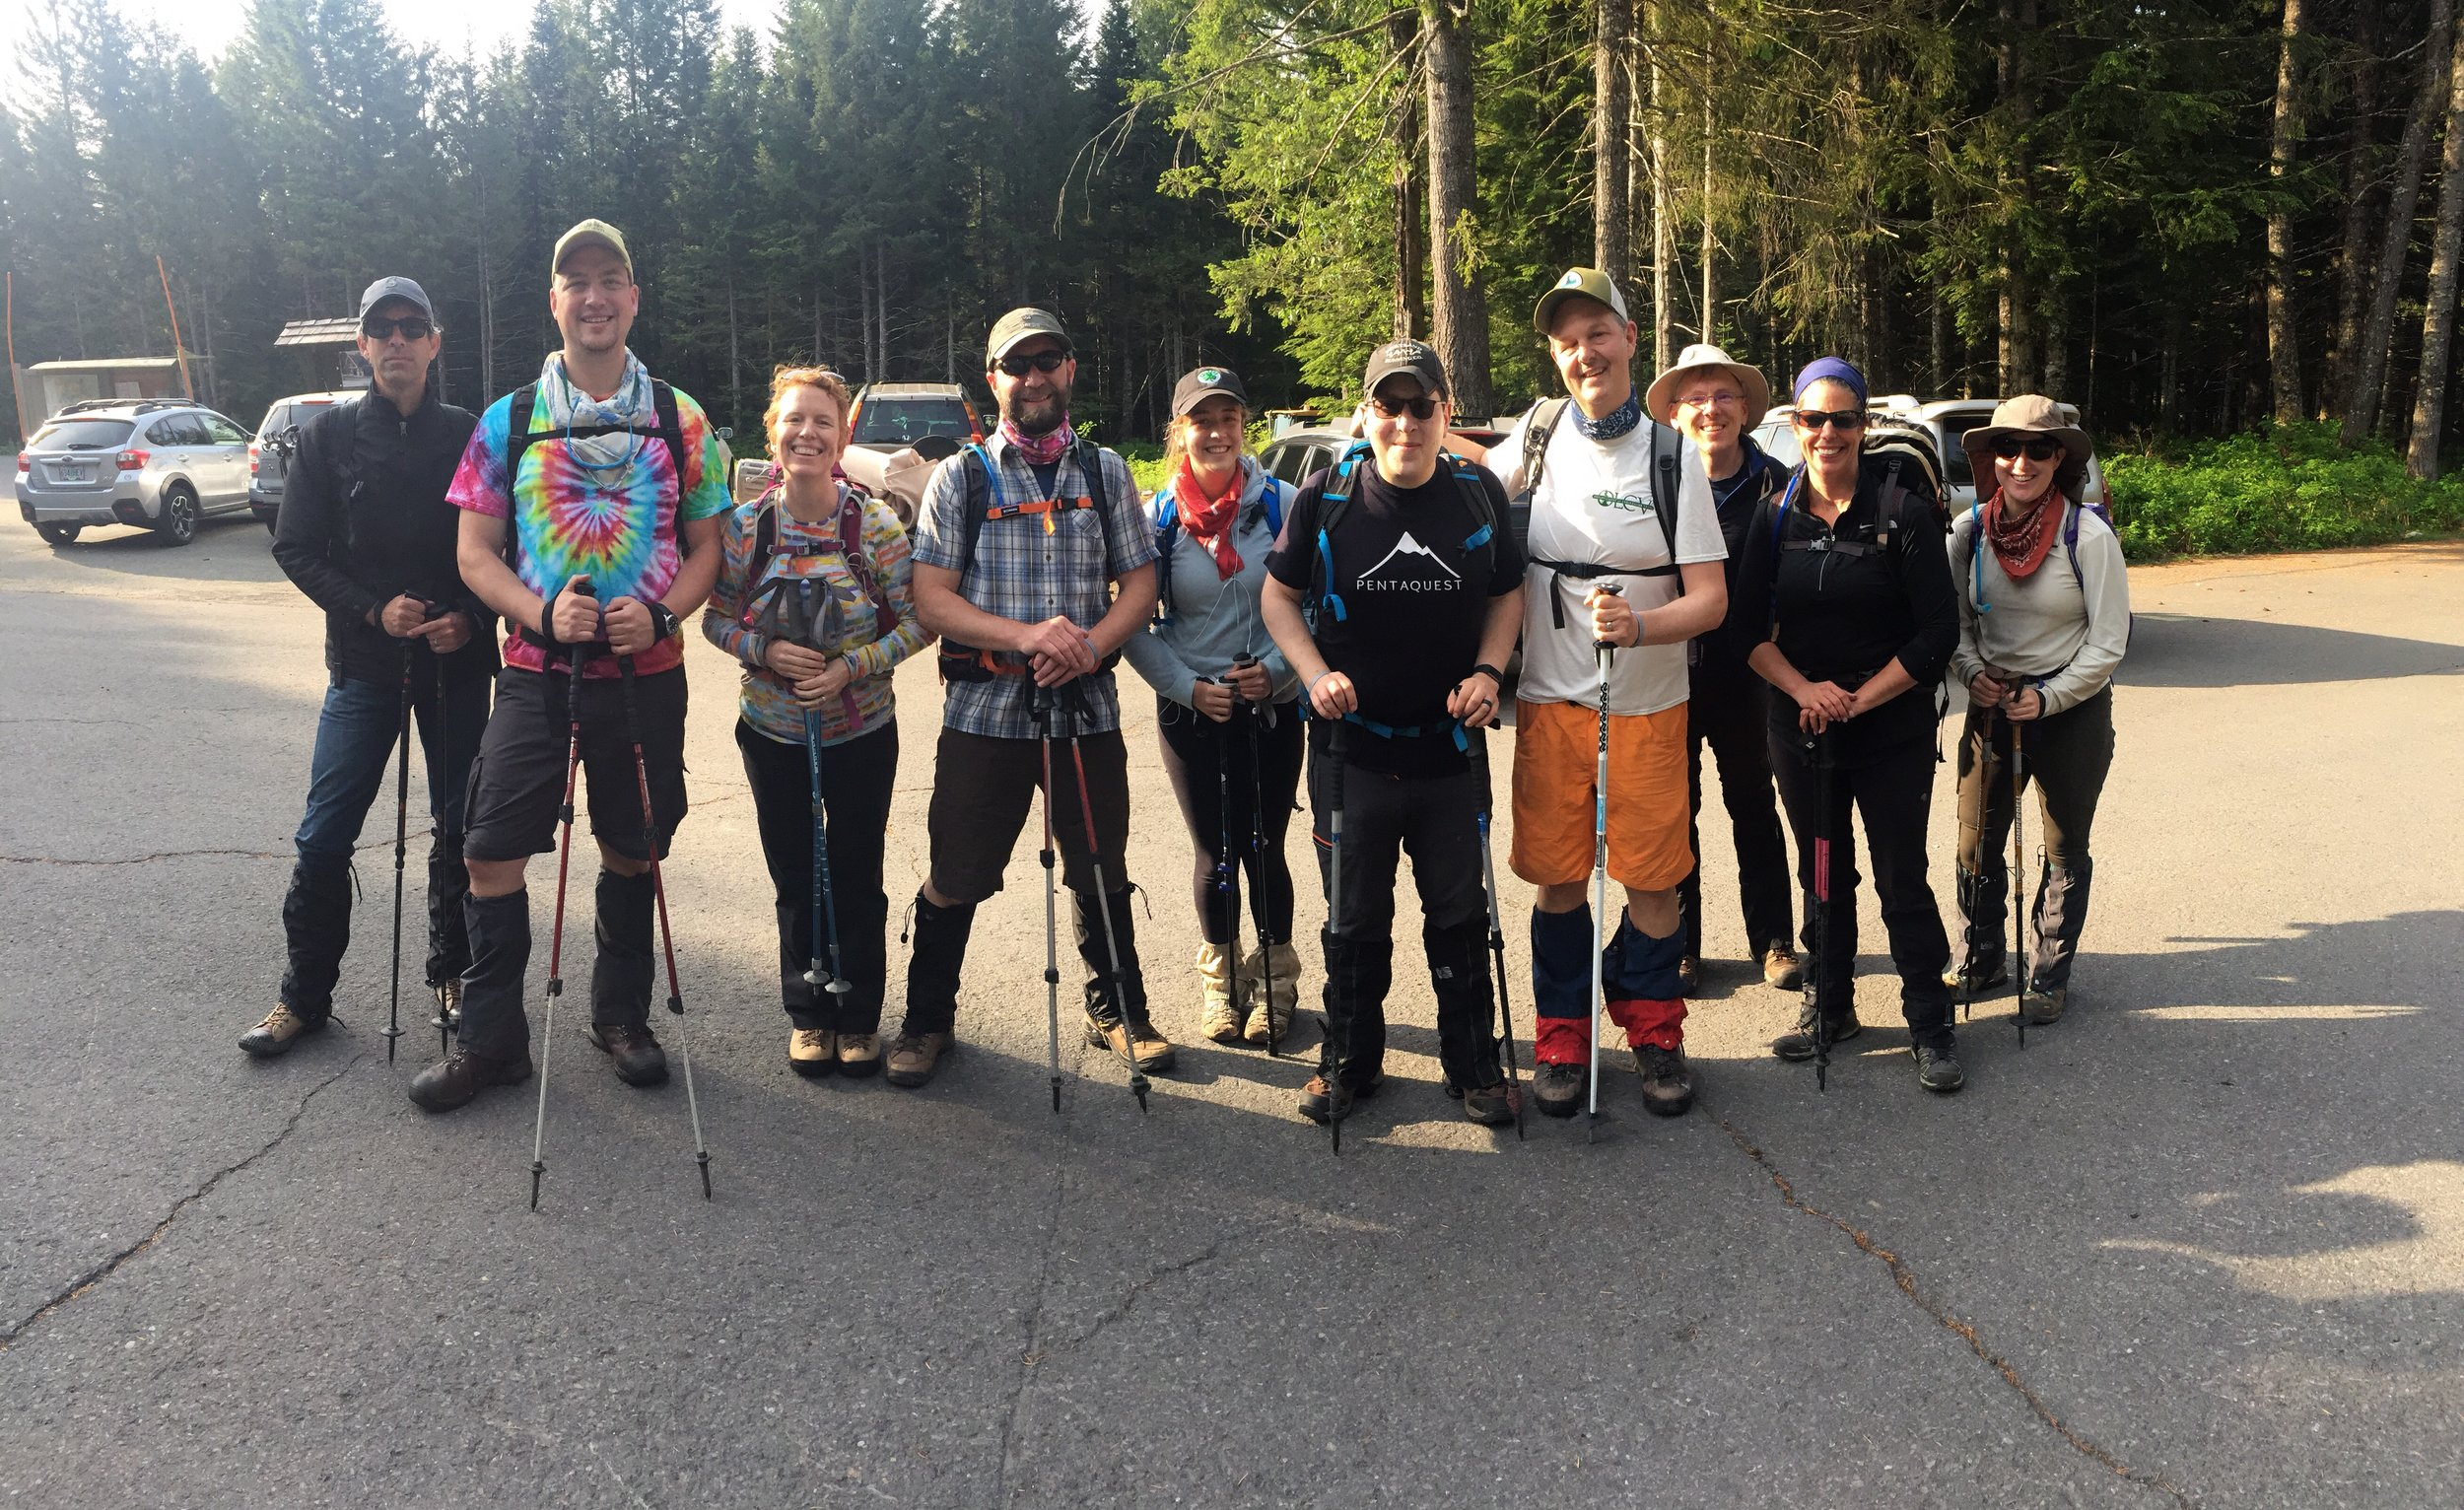 The Pentaquest team at the Marble Mountain Sno Park trailhead.